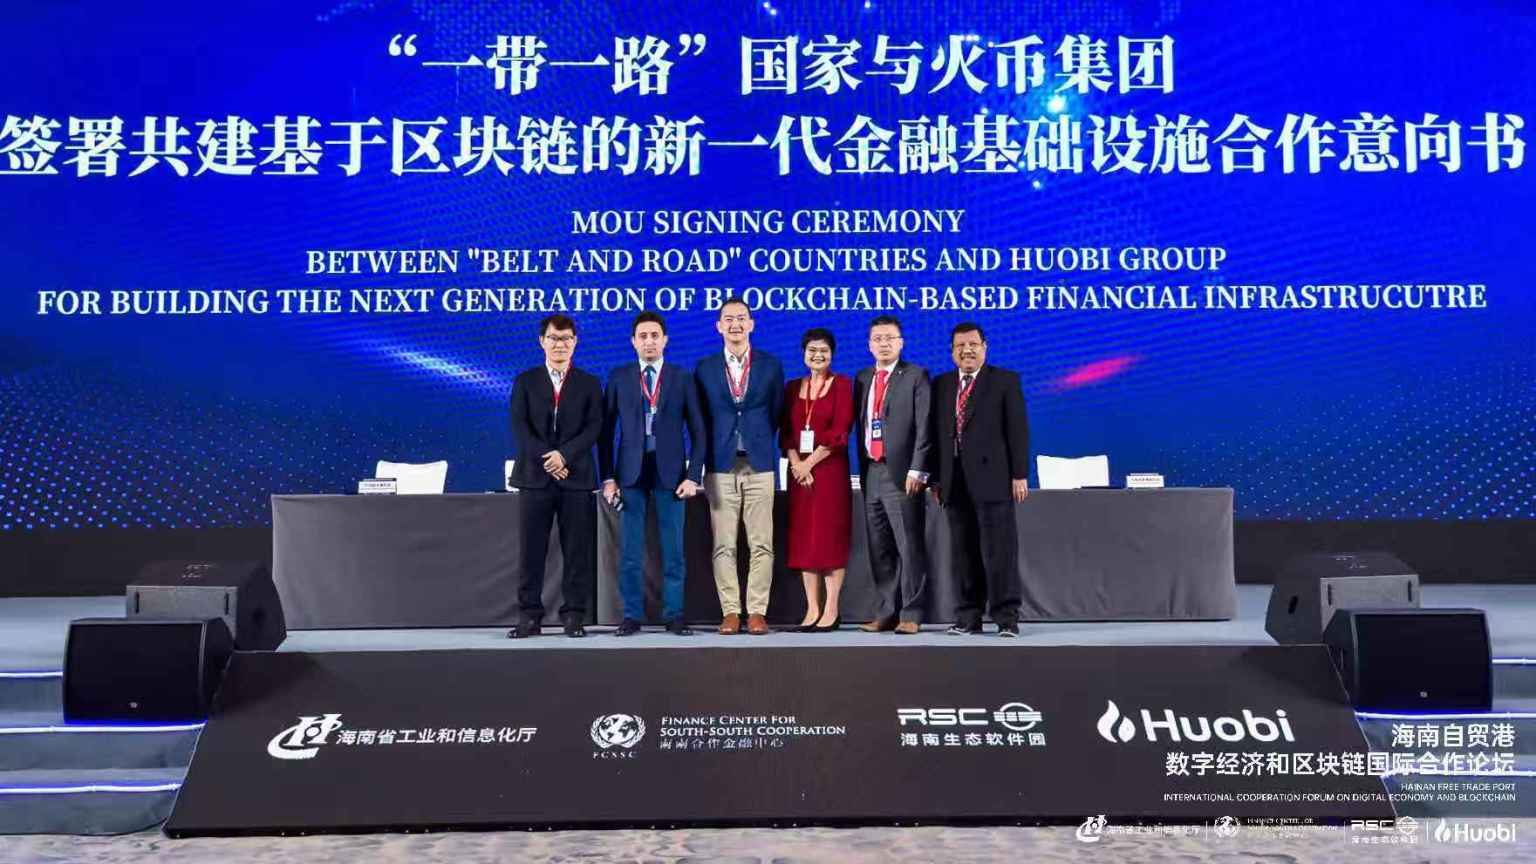 CSJ Legel was invited to attend Hainan Free Trade Port International Cooperation Forum on Digital Economy and Blockchain on 5-6th December 2019